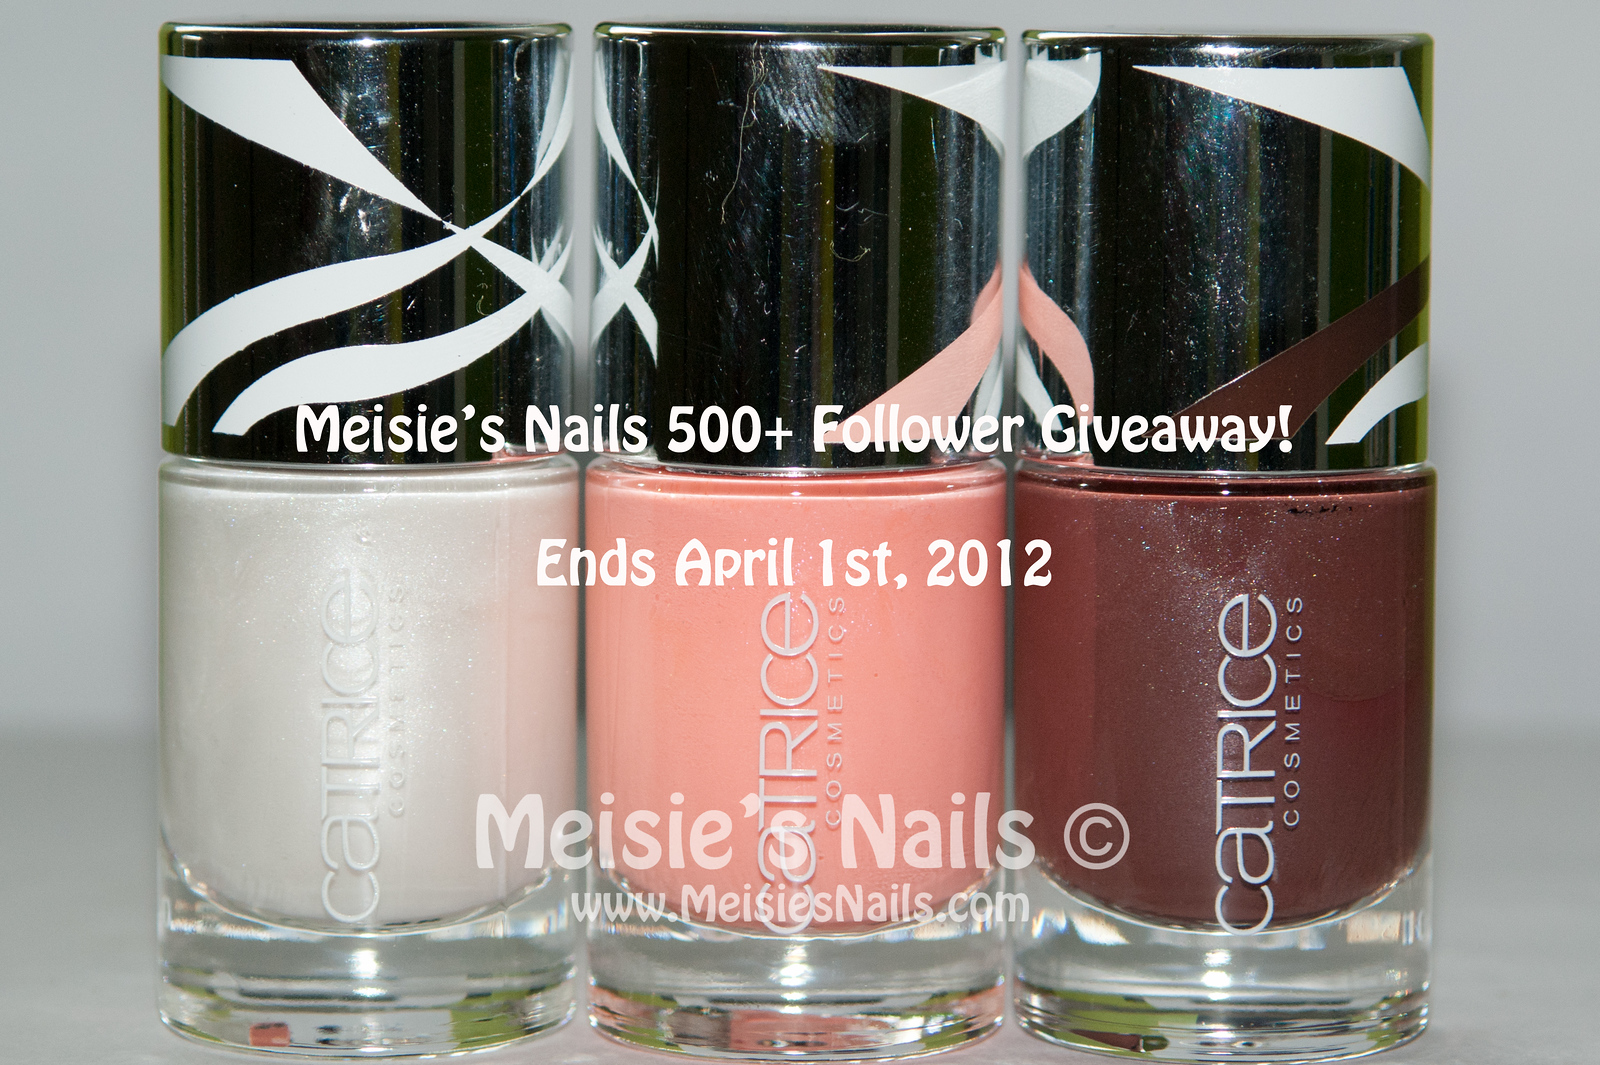 Meisie's Nails 500 Follower Giveaway